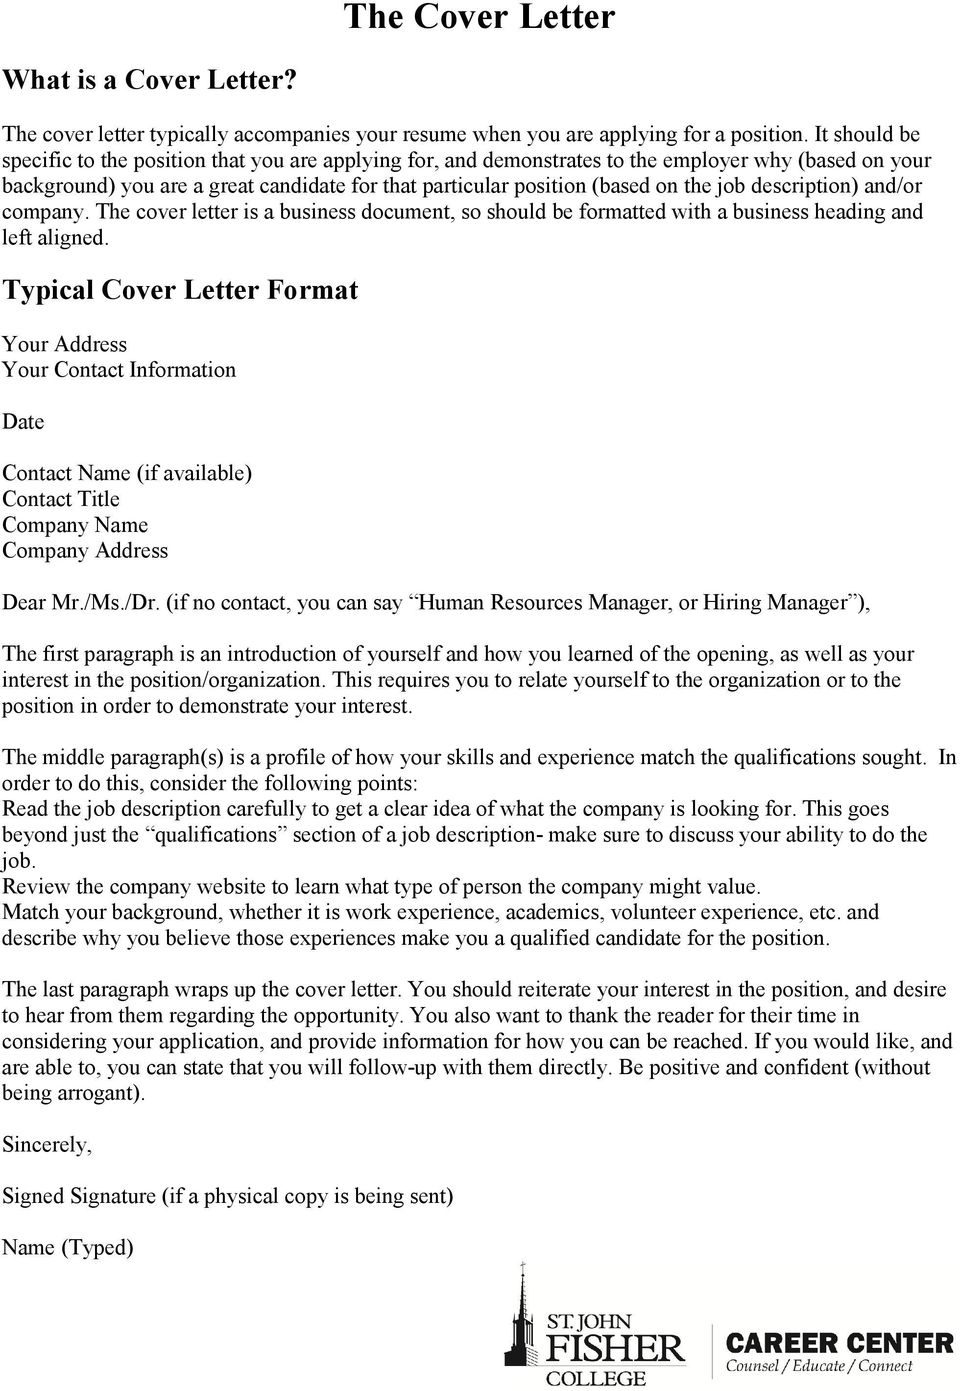 The Cover Letter. Dear Mr./Ms./Dr. (if no contact, you can ...